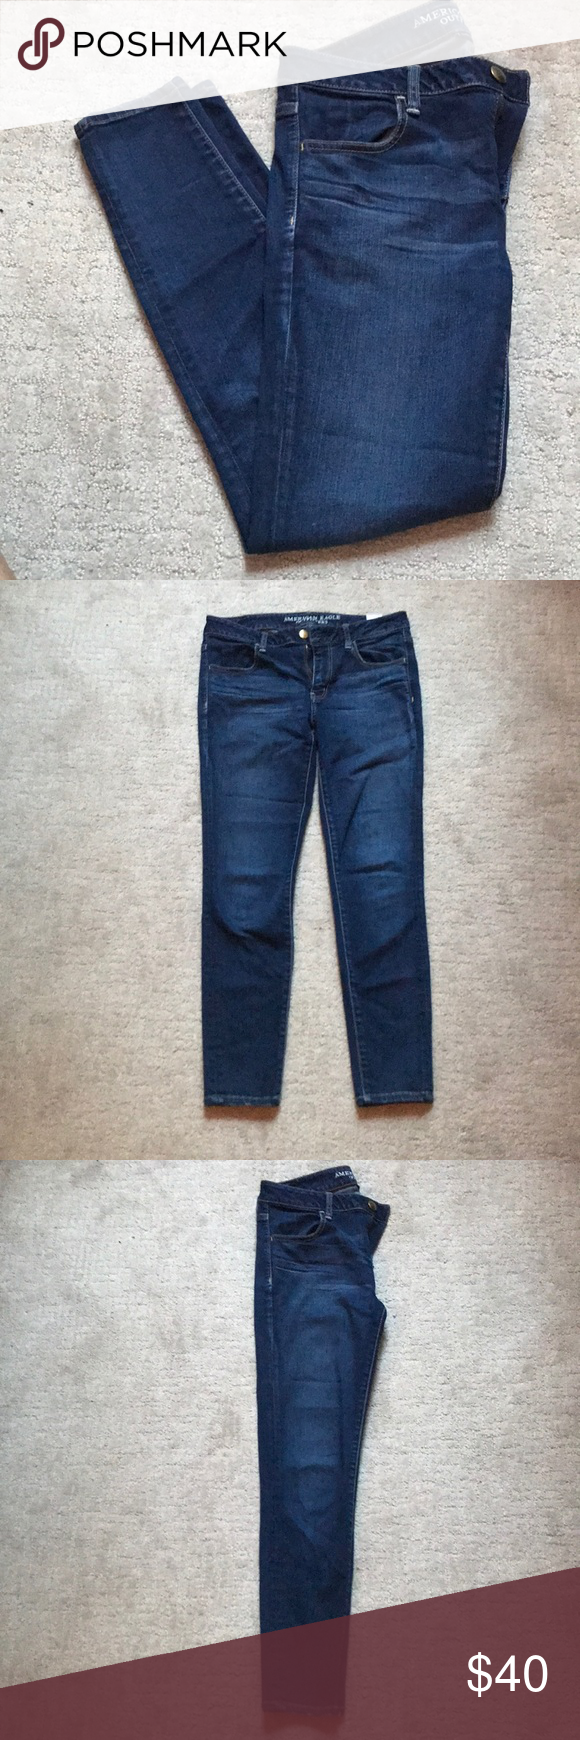 ae jegging size 6 american eagle jegging size 6 super comfortable true to size if you review ae size chart american eagle outfitters jeans skinny